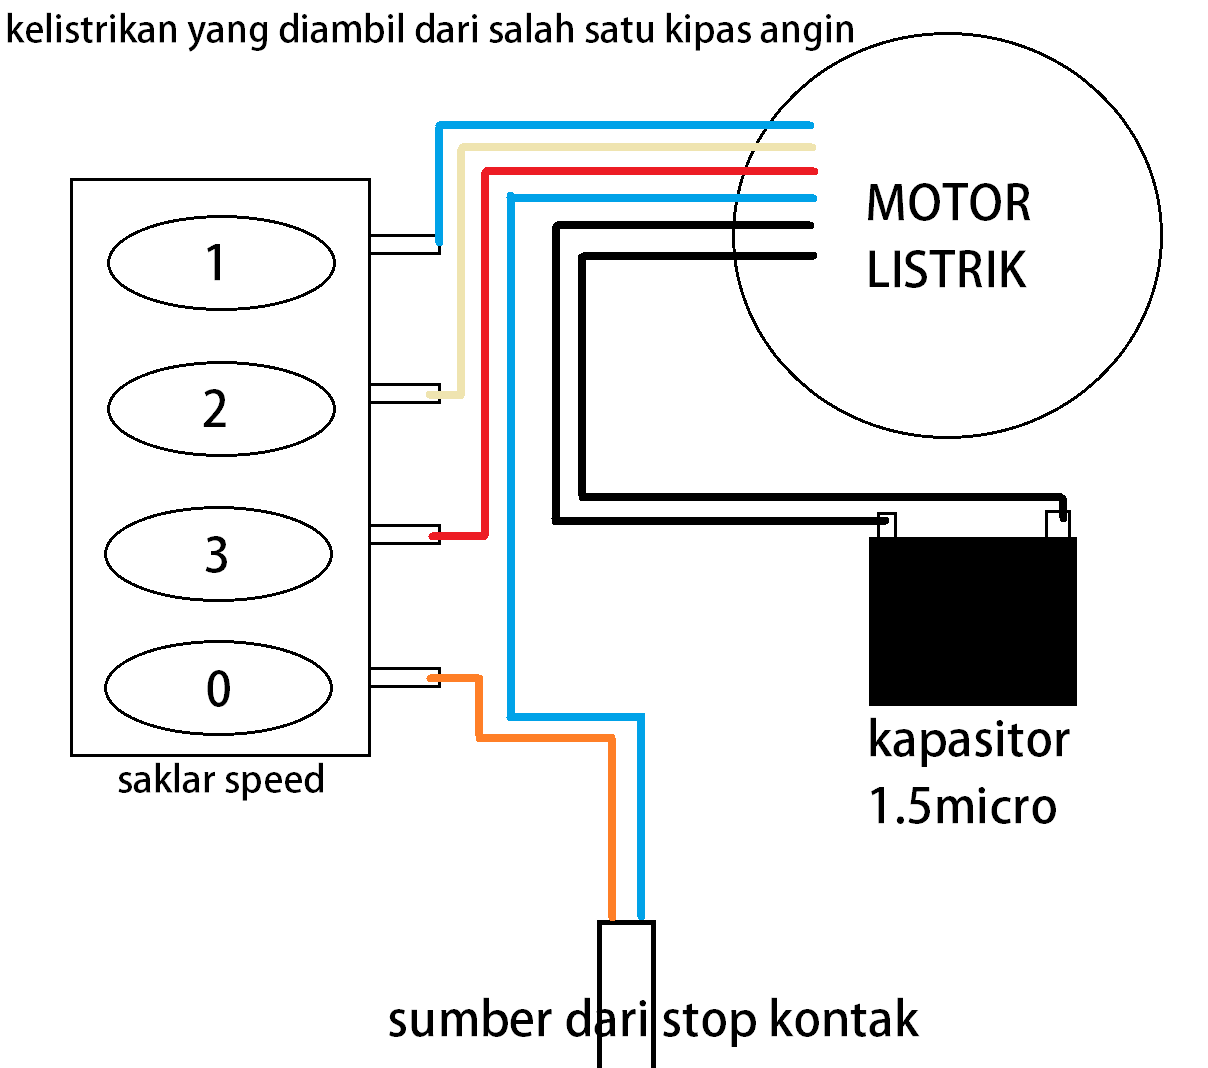 Penerangan Gambar Single Line Wiring Diagram Diagrams Electrical One Kontruksi Kipas Angin Sistem Kelistrikan Dan Bagian Rh Pinterest Com Panel